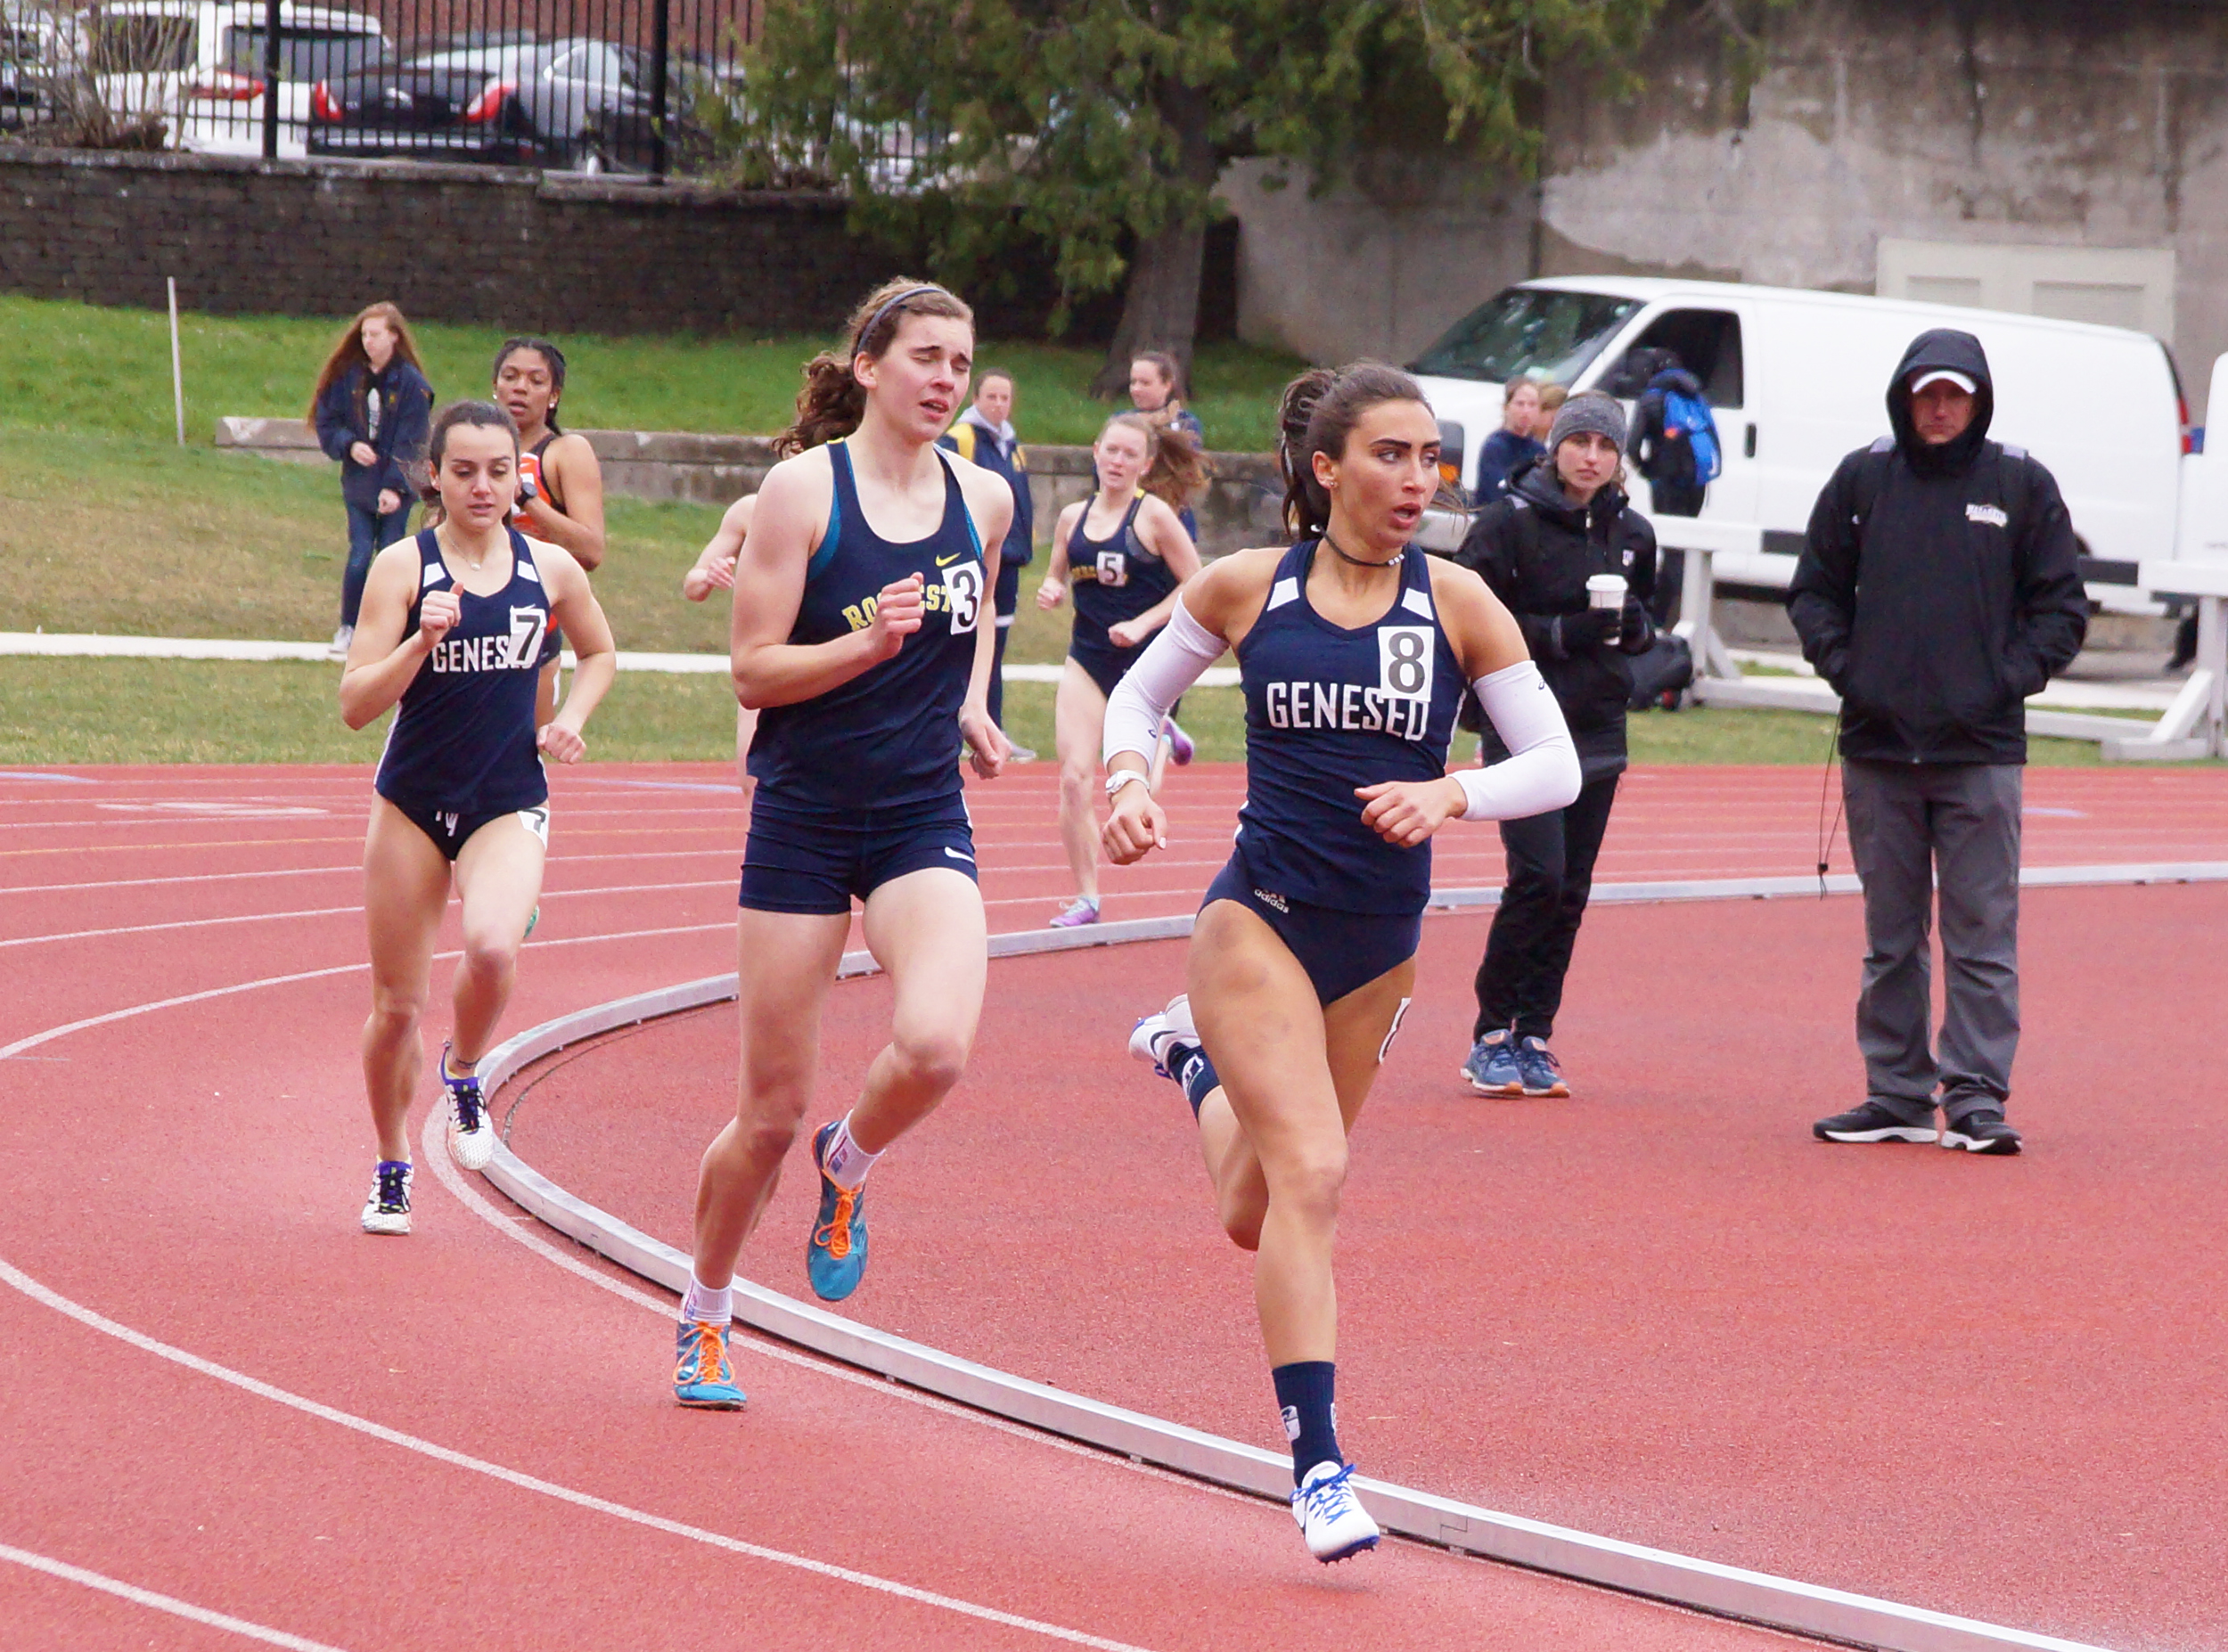 Sophomore sprinter Angela Calabrese (left) and senior mid-distance runner Julianna Lauricella (right) compete in the open 800 at the Rochester Spring Classic. Lauricella placed fifth in the event (Kara Burke/News Editor).